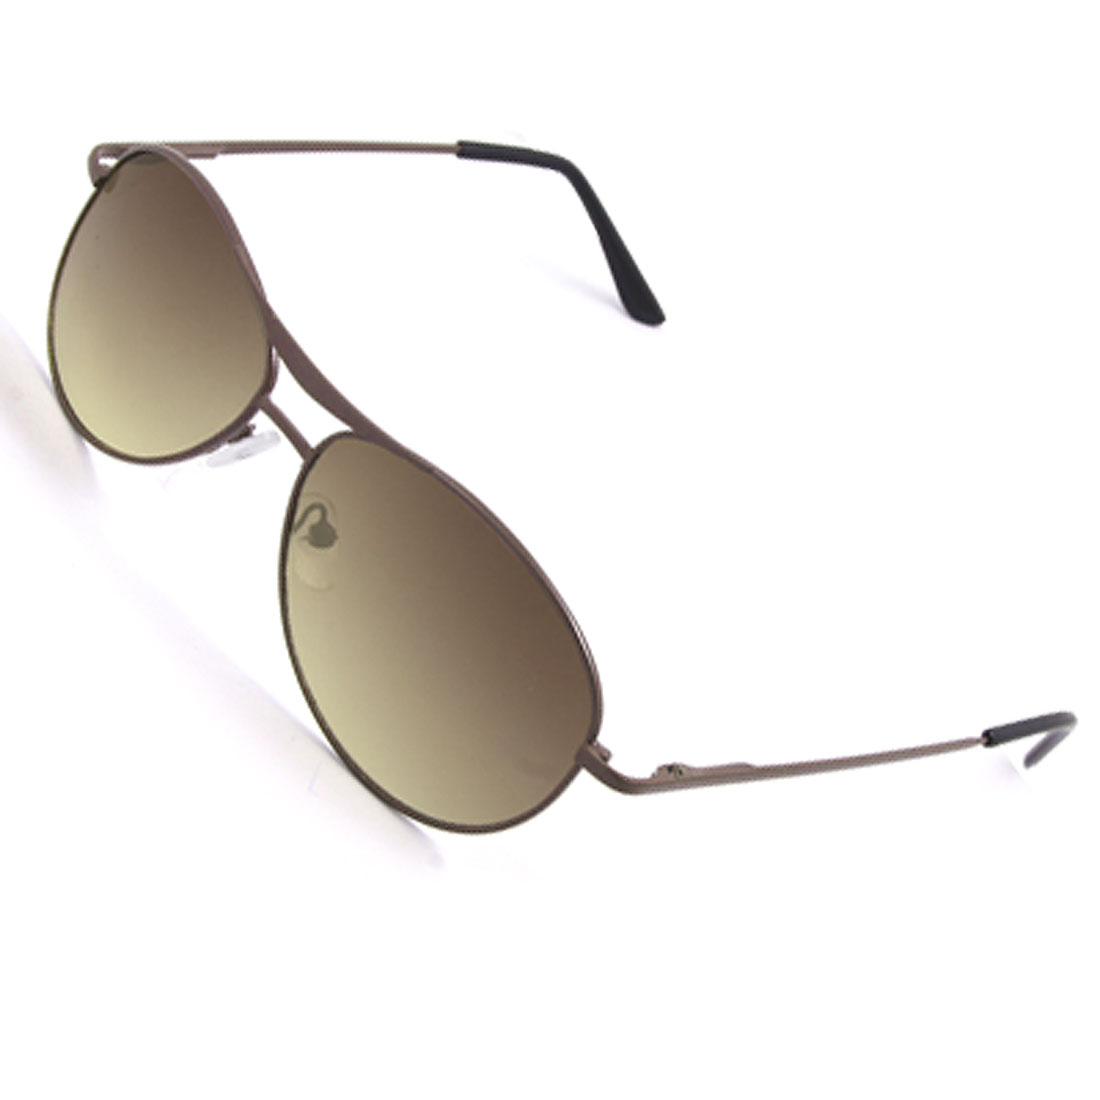 Double Bridge Oval Lens Full Frame Rim Children Sunglasses Eyewear